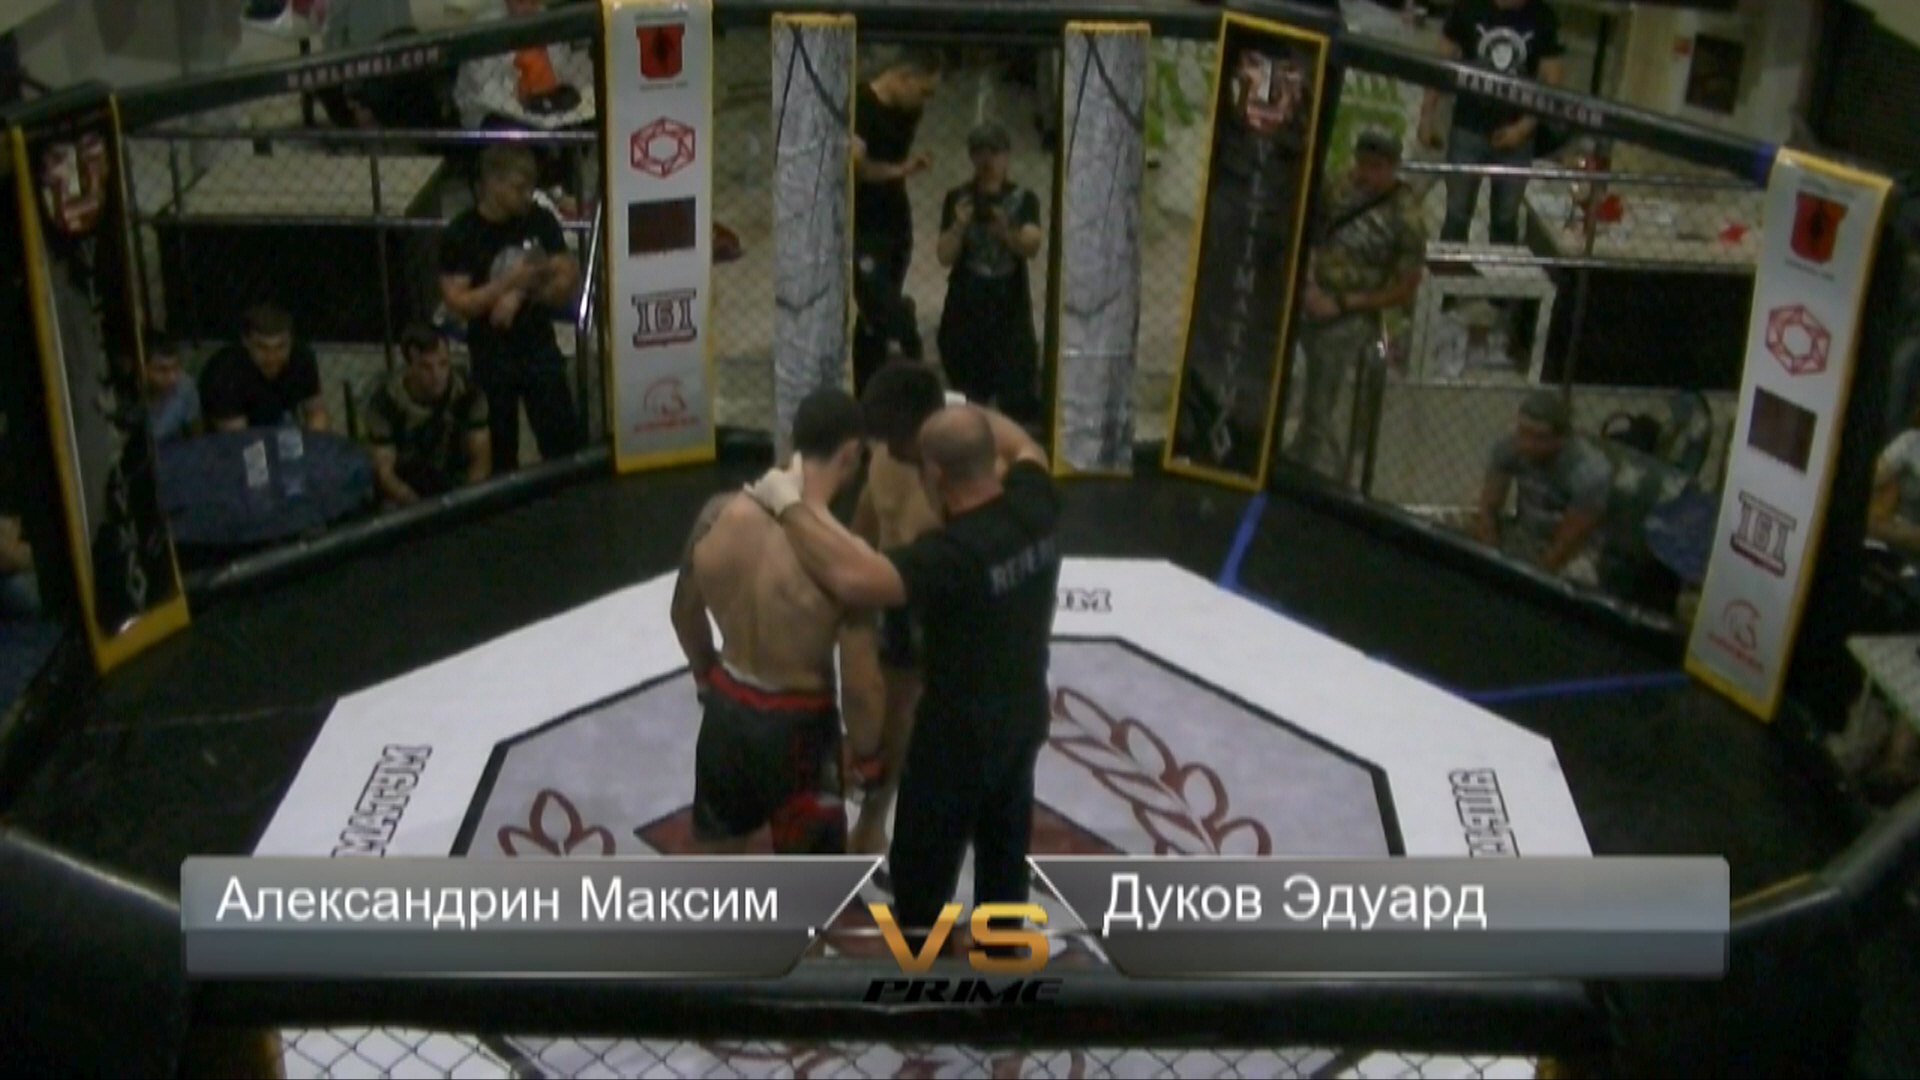 Бой Дуков Эдуард vs. Александрин Максим.ULTIMATUM 6